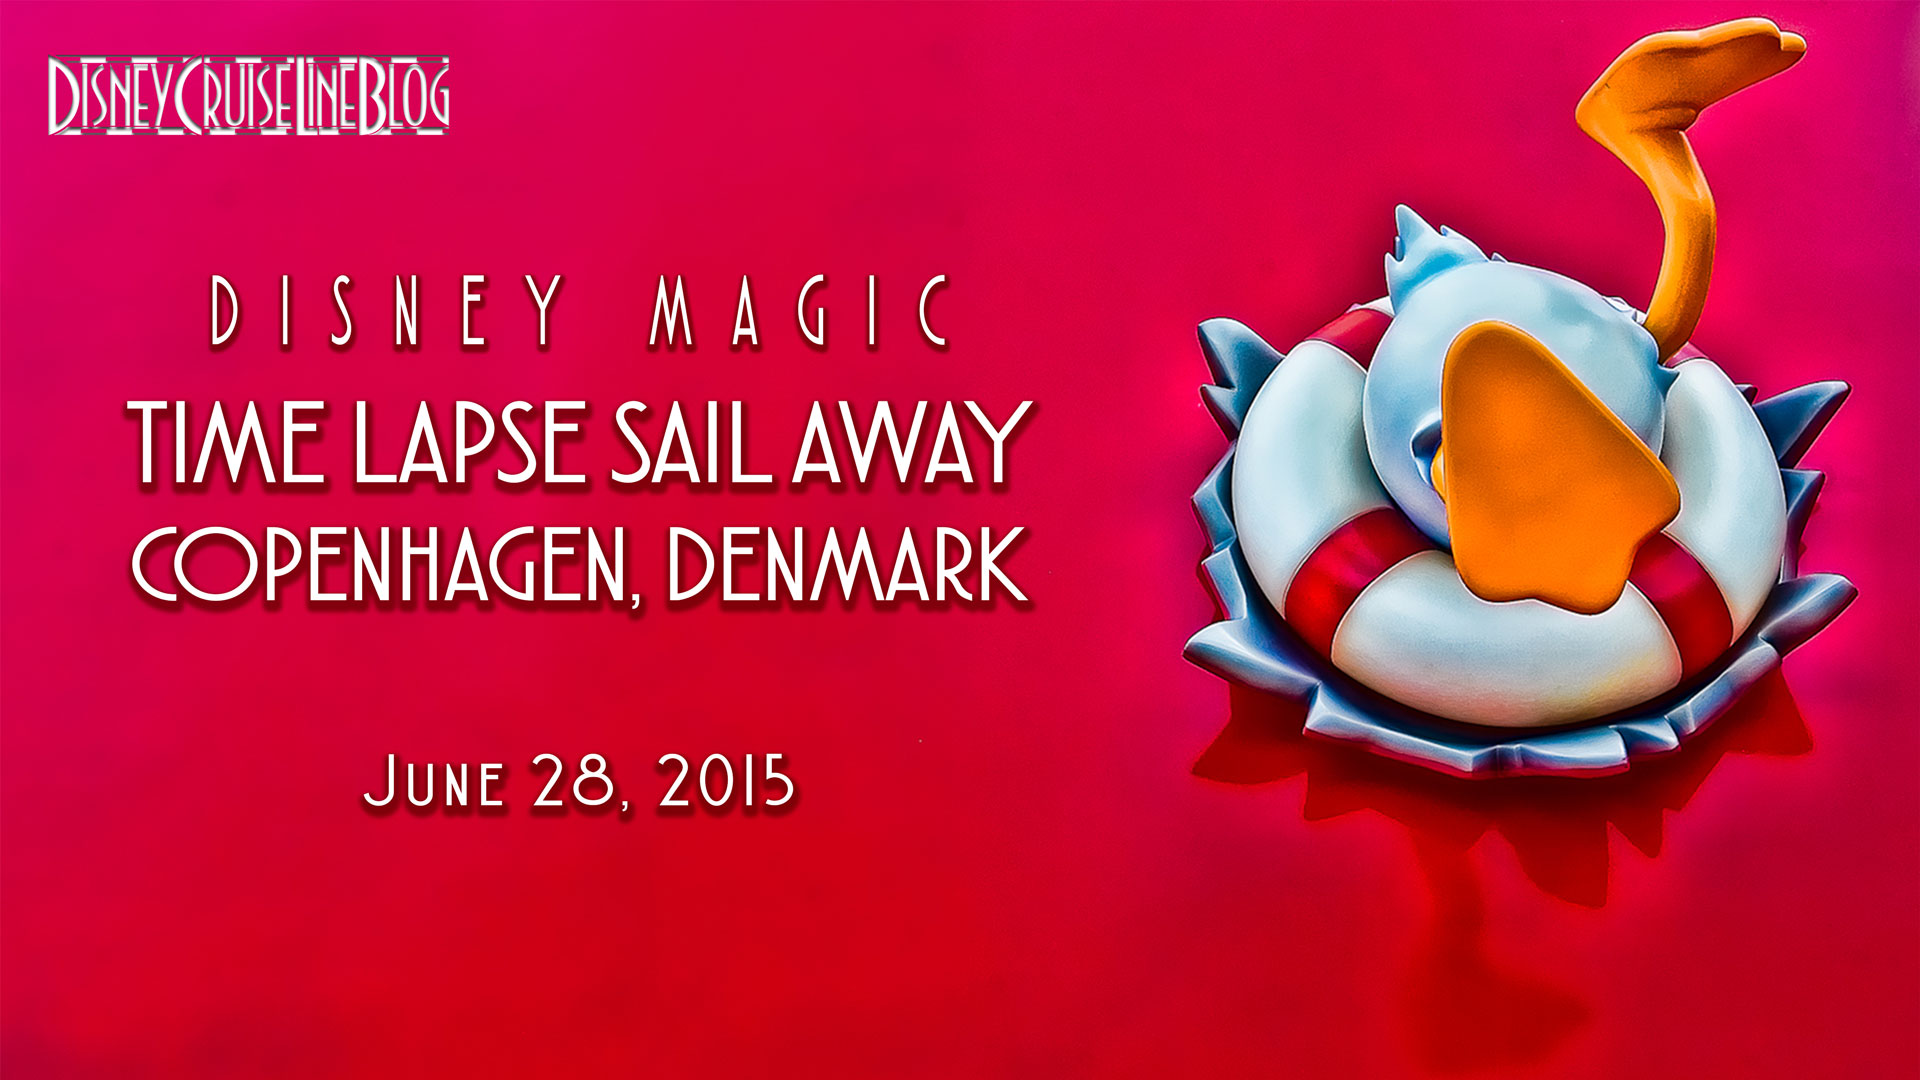 Disney Magic Sail Away Copenhagen Denmark Video